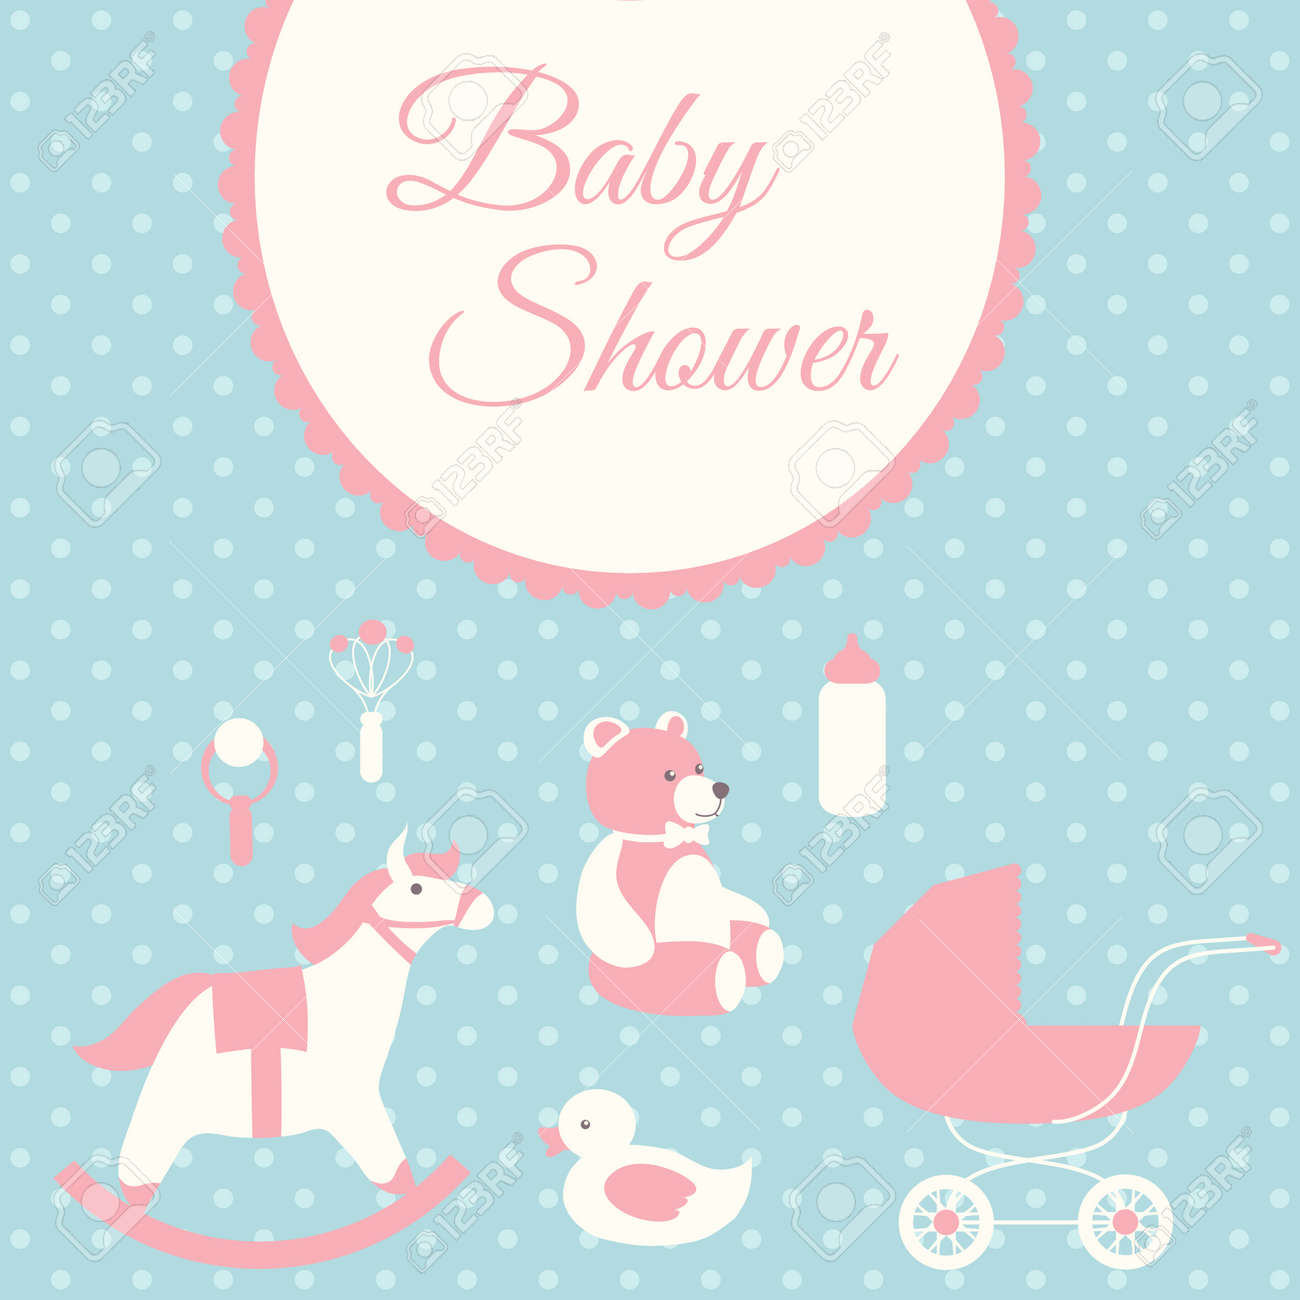 Baby Shower Invitation Card Template. Rocking Horse, Teddy Bear ...